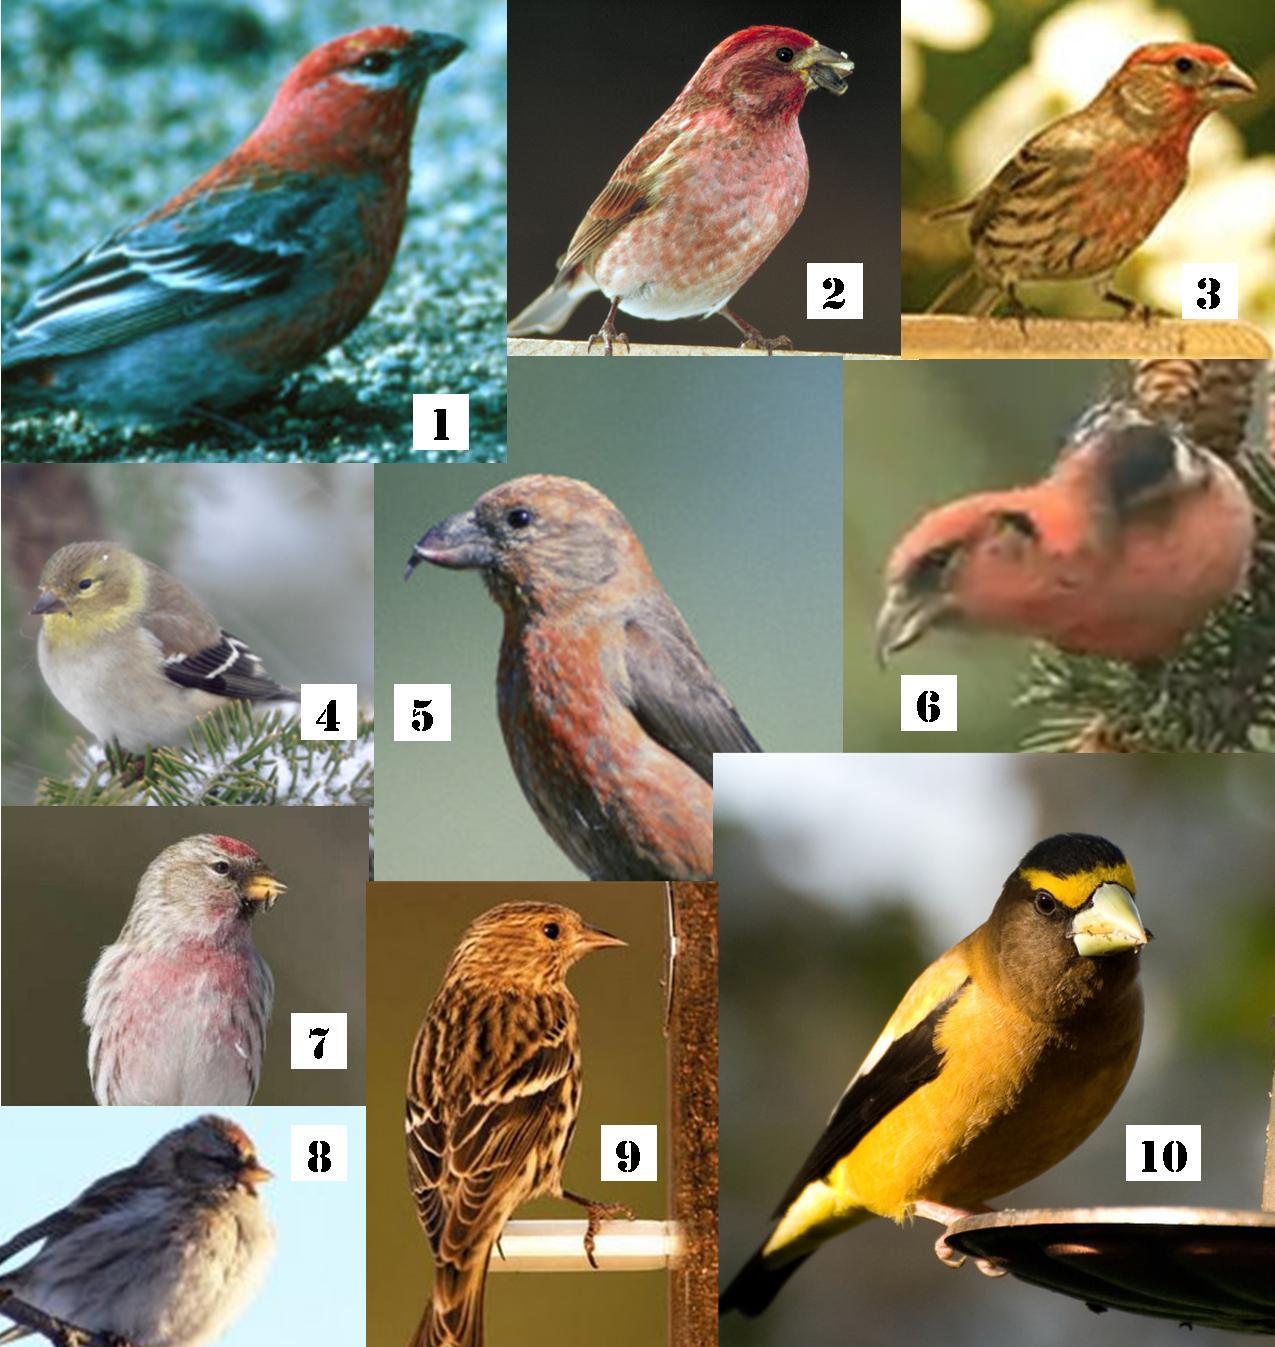 Wild Birds Unlimited Common Michigan Birds I Can See At: #FeedtheBirds 1: 2012 Winter Finch Forecast: Good News For